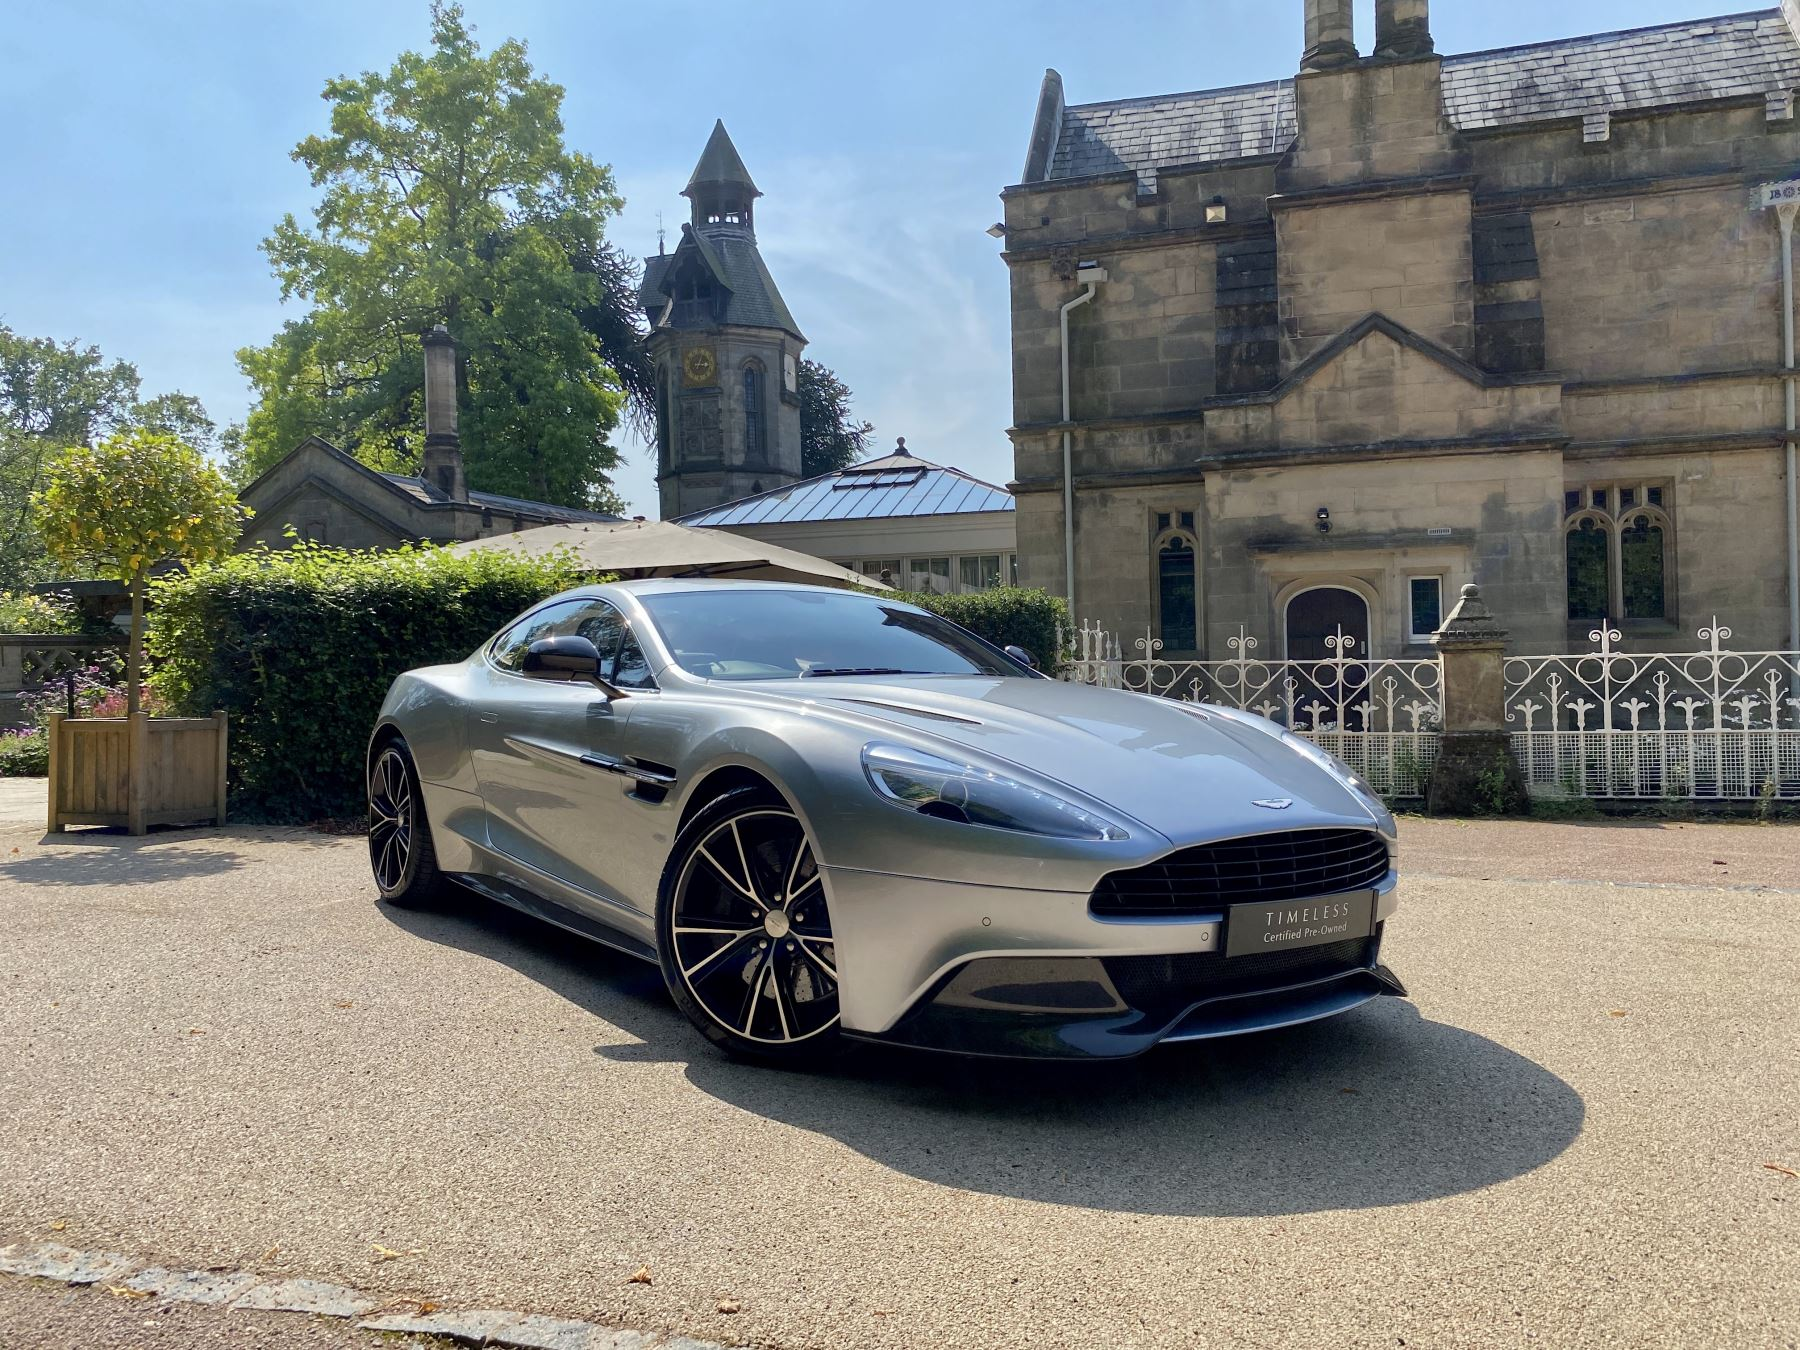 Aston Martin Vanquish V12 2+2 2dr Touchtronic 5.9 Automatic Coupe (2013)